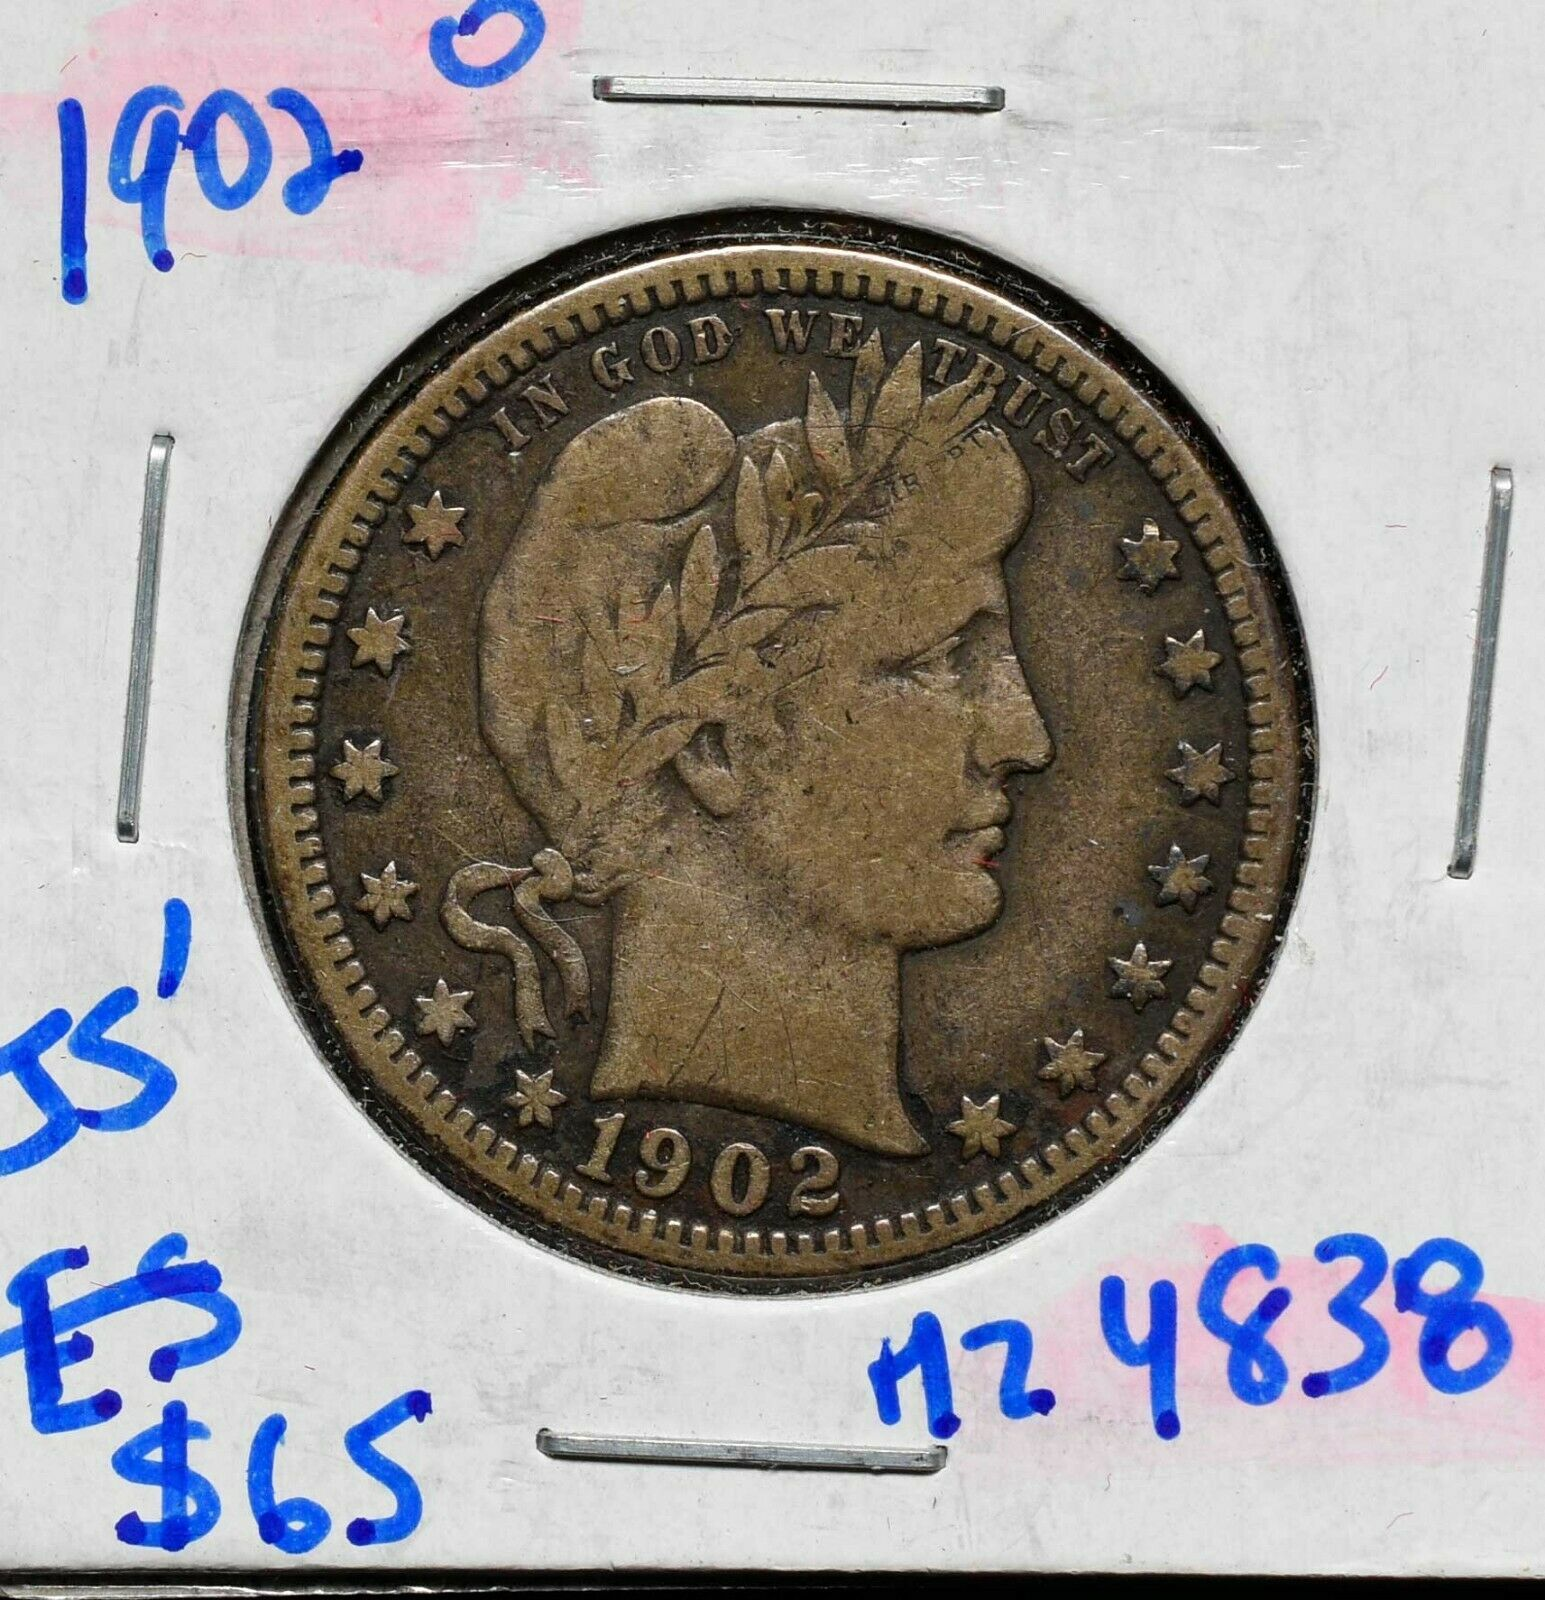 1902O Silver Barber Quarter Dollar 25¢ Coin Lot# MZ 4838